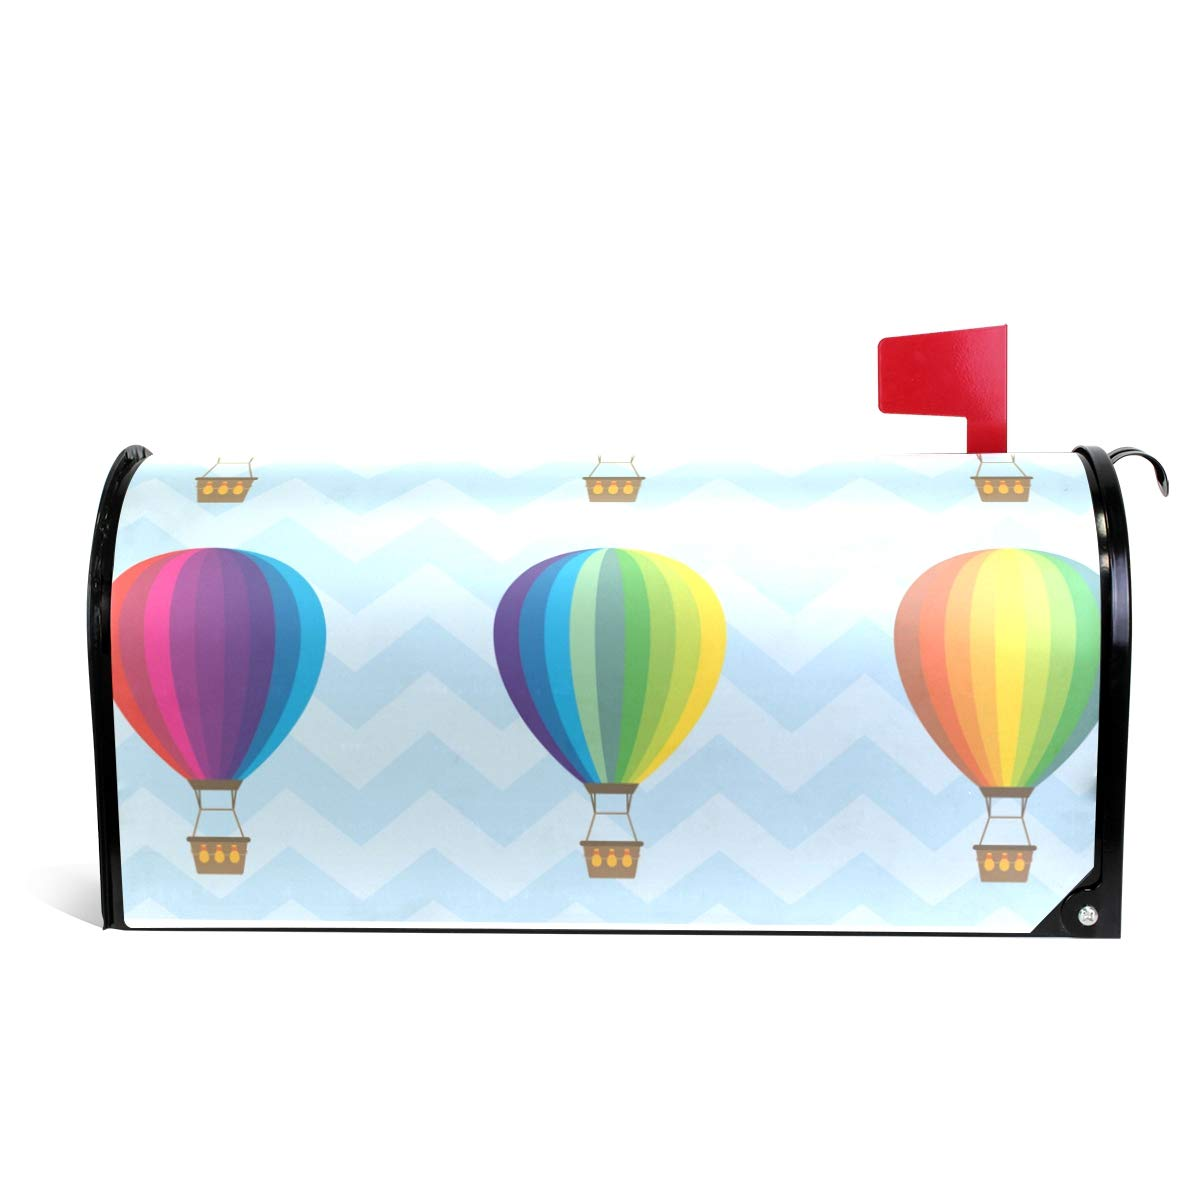 LORVIES Hot Air Balloons Magnetic Mailbox Cover Oversized 25.5 x 18 Inch